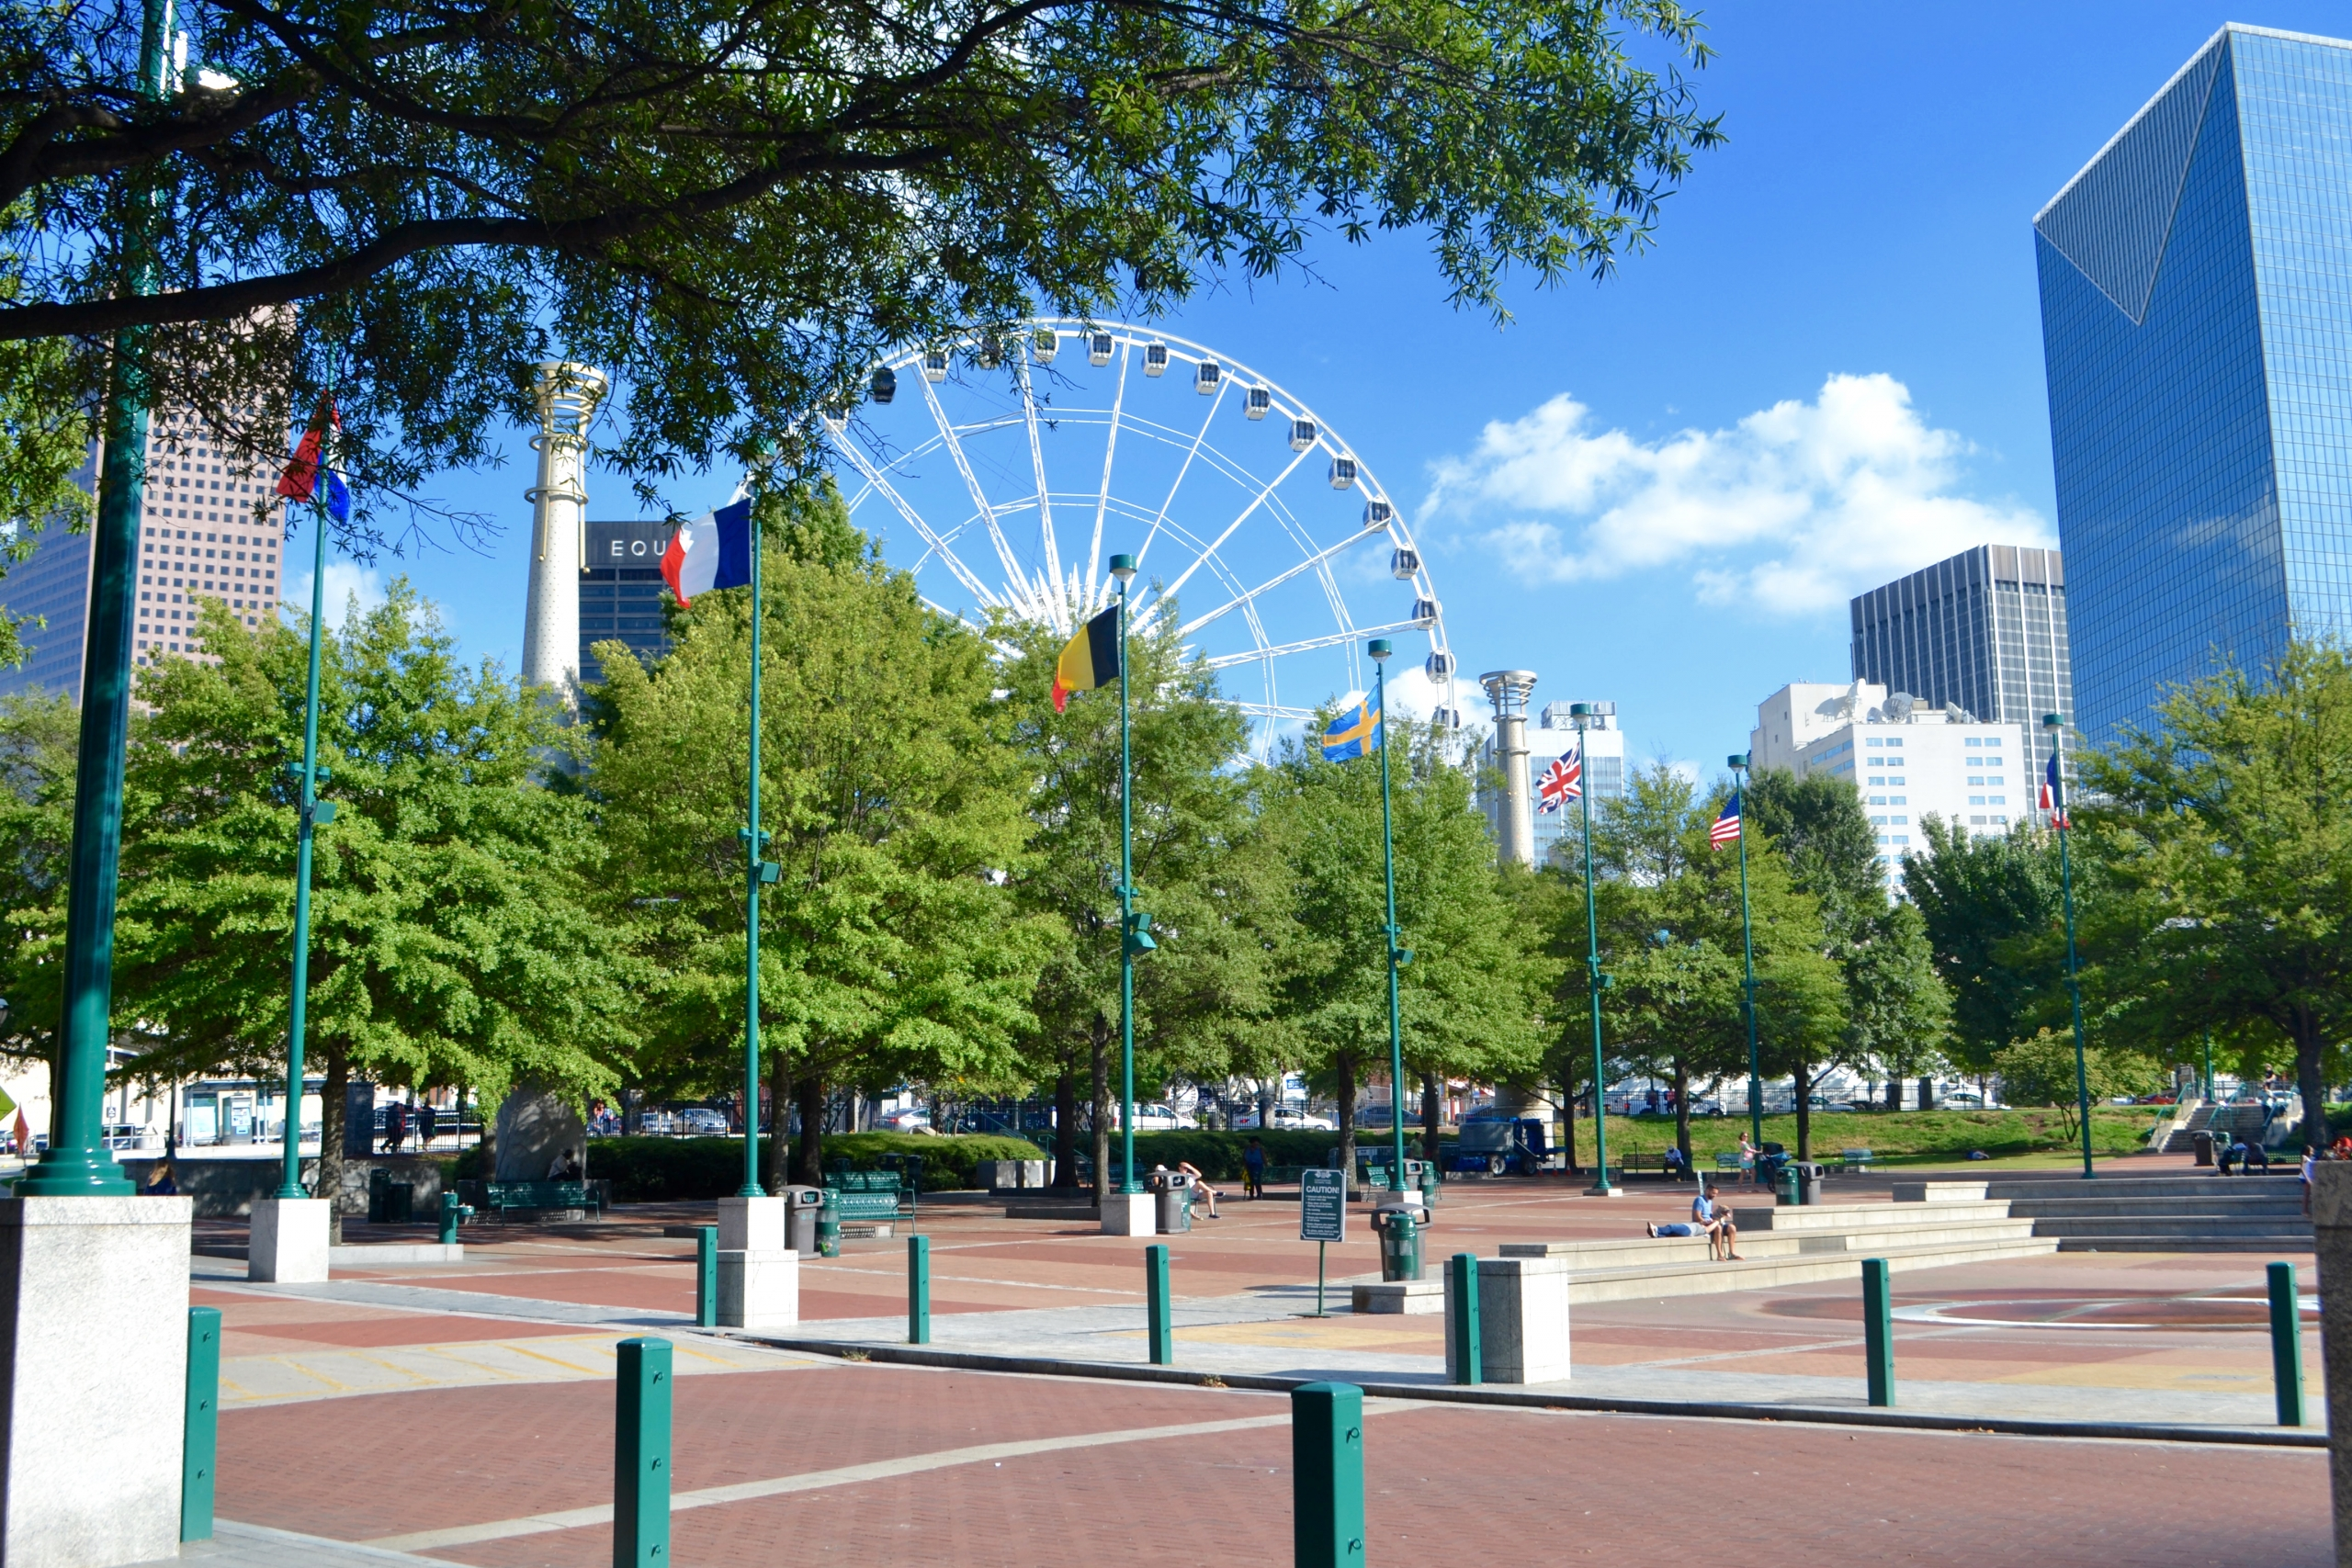 10 Things I Learned While In Atlanta